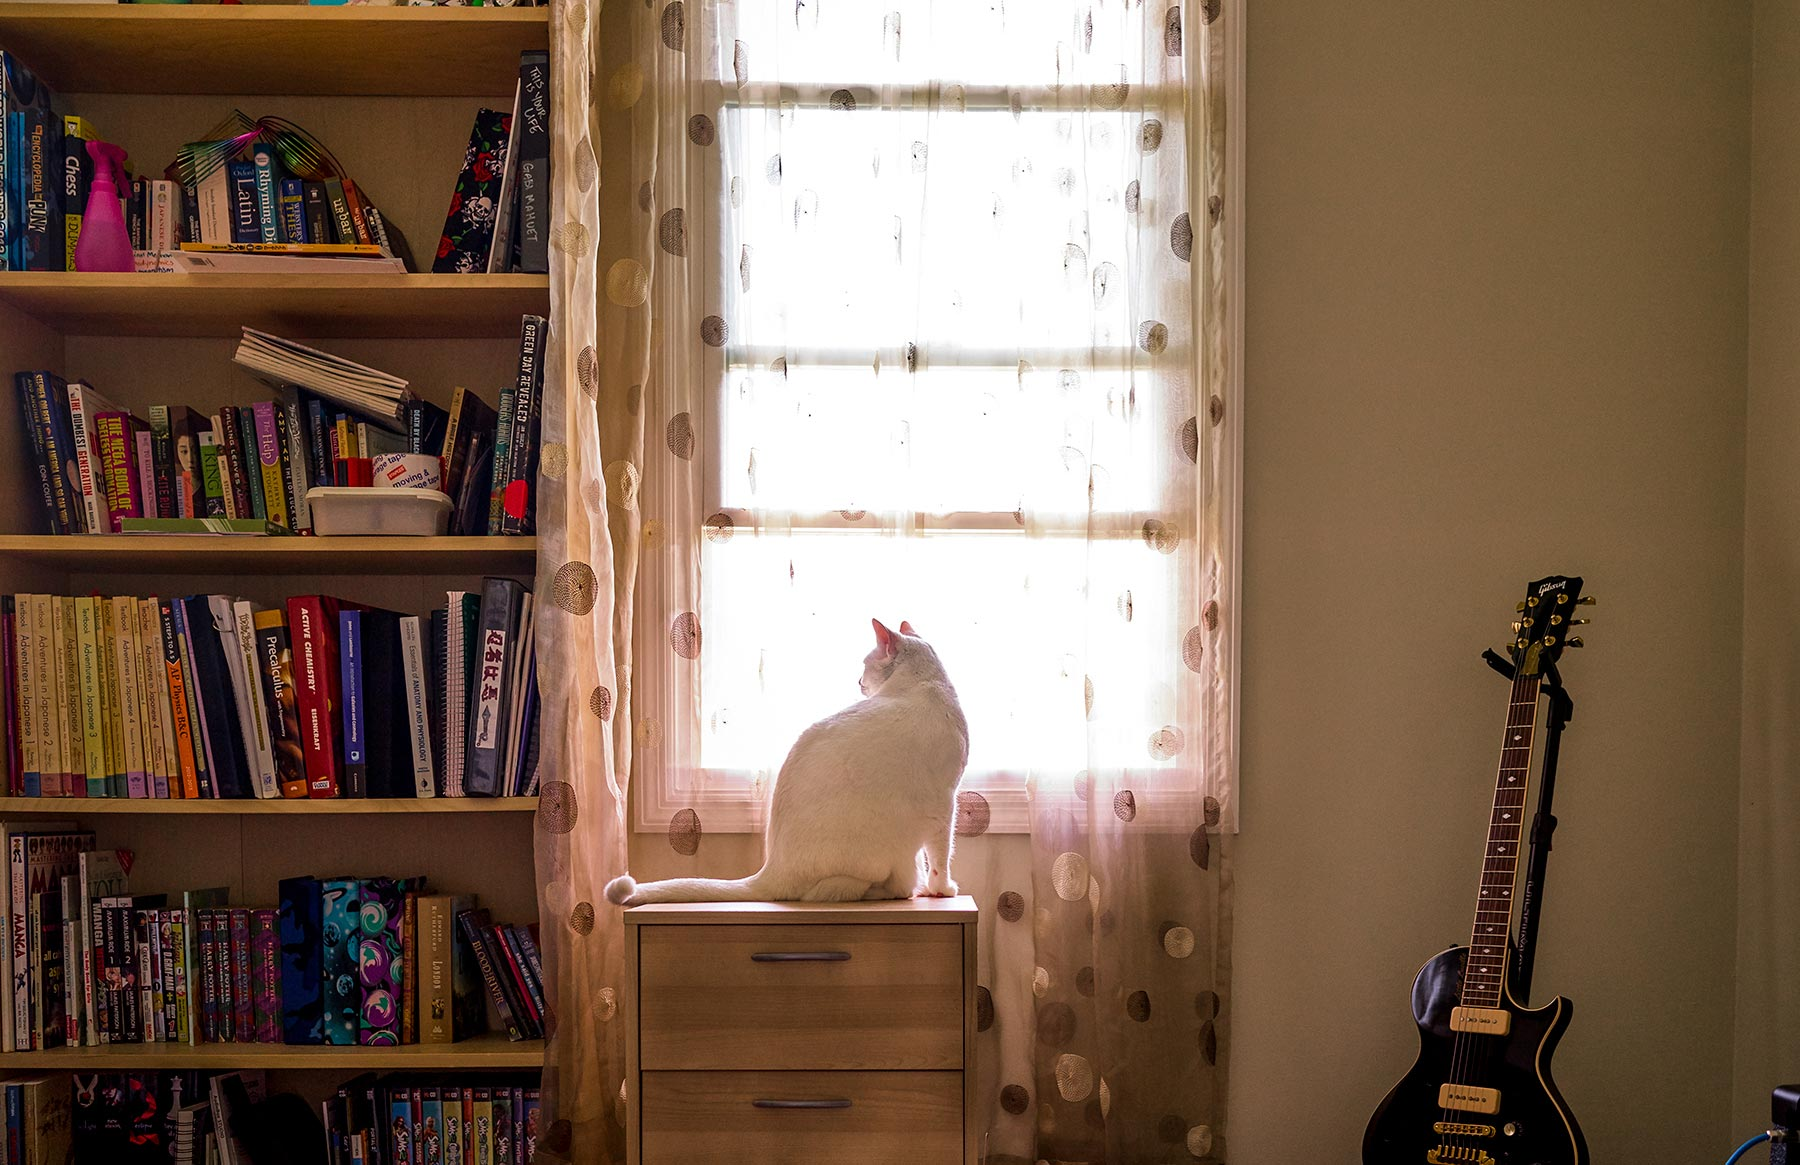 A-portrait-of-a-white-cat-sitting-in-front-of-a-bedroom-window